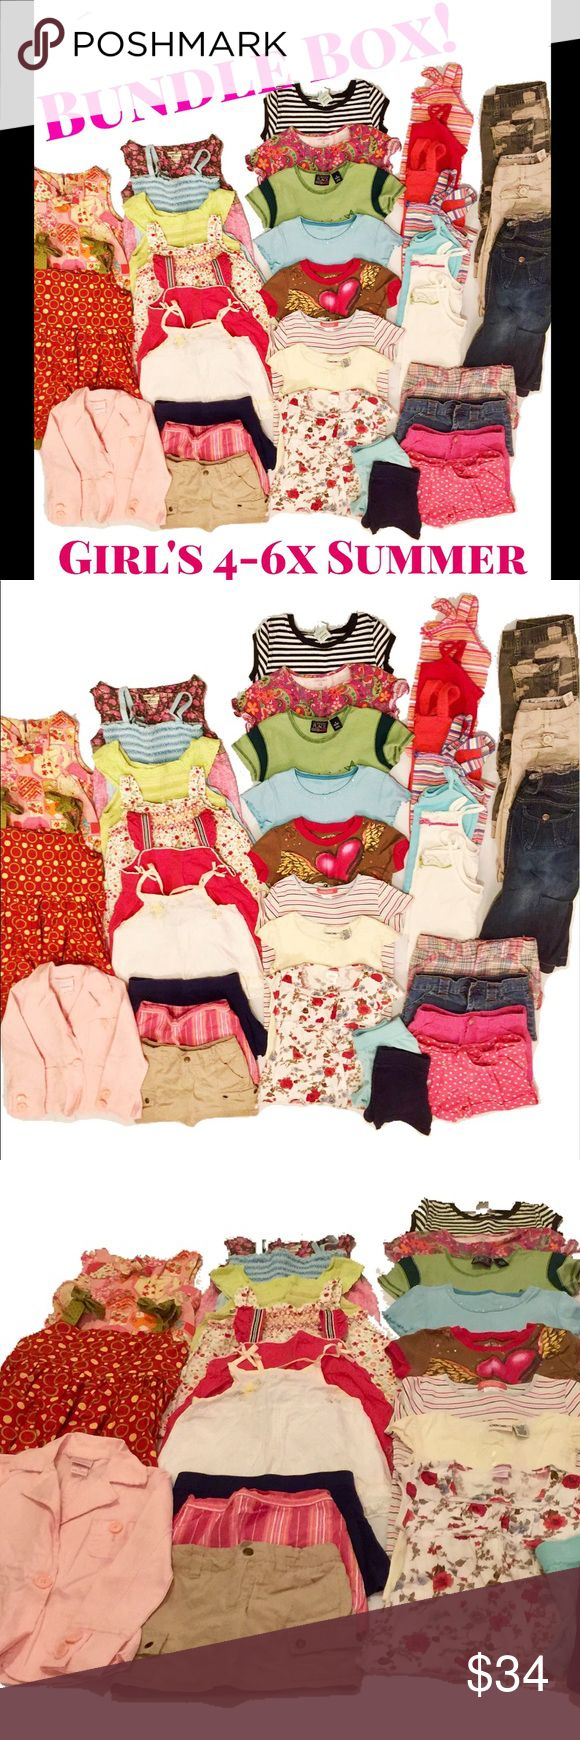 """📦 BUNDLE BOX! Girl's 4-6x Summer Girls size 4-6x box loaded with Summer clothes! Here's what you get: 2 dresses, 1 jacket, 6 blouses, 3 skorts, 8 t-shirts, 7 tank tops, 6 shorts, 3 Capri pants. This is a great deal- these huge bundles never last long, so snatch it up! Box size: 12""""x14""""x8"""" multiple brands Matching Sets"""